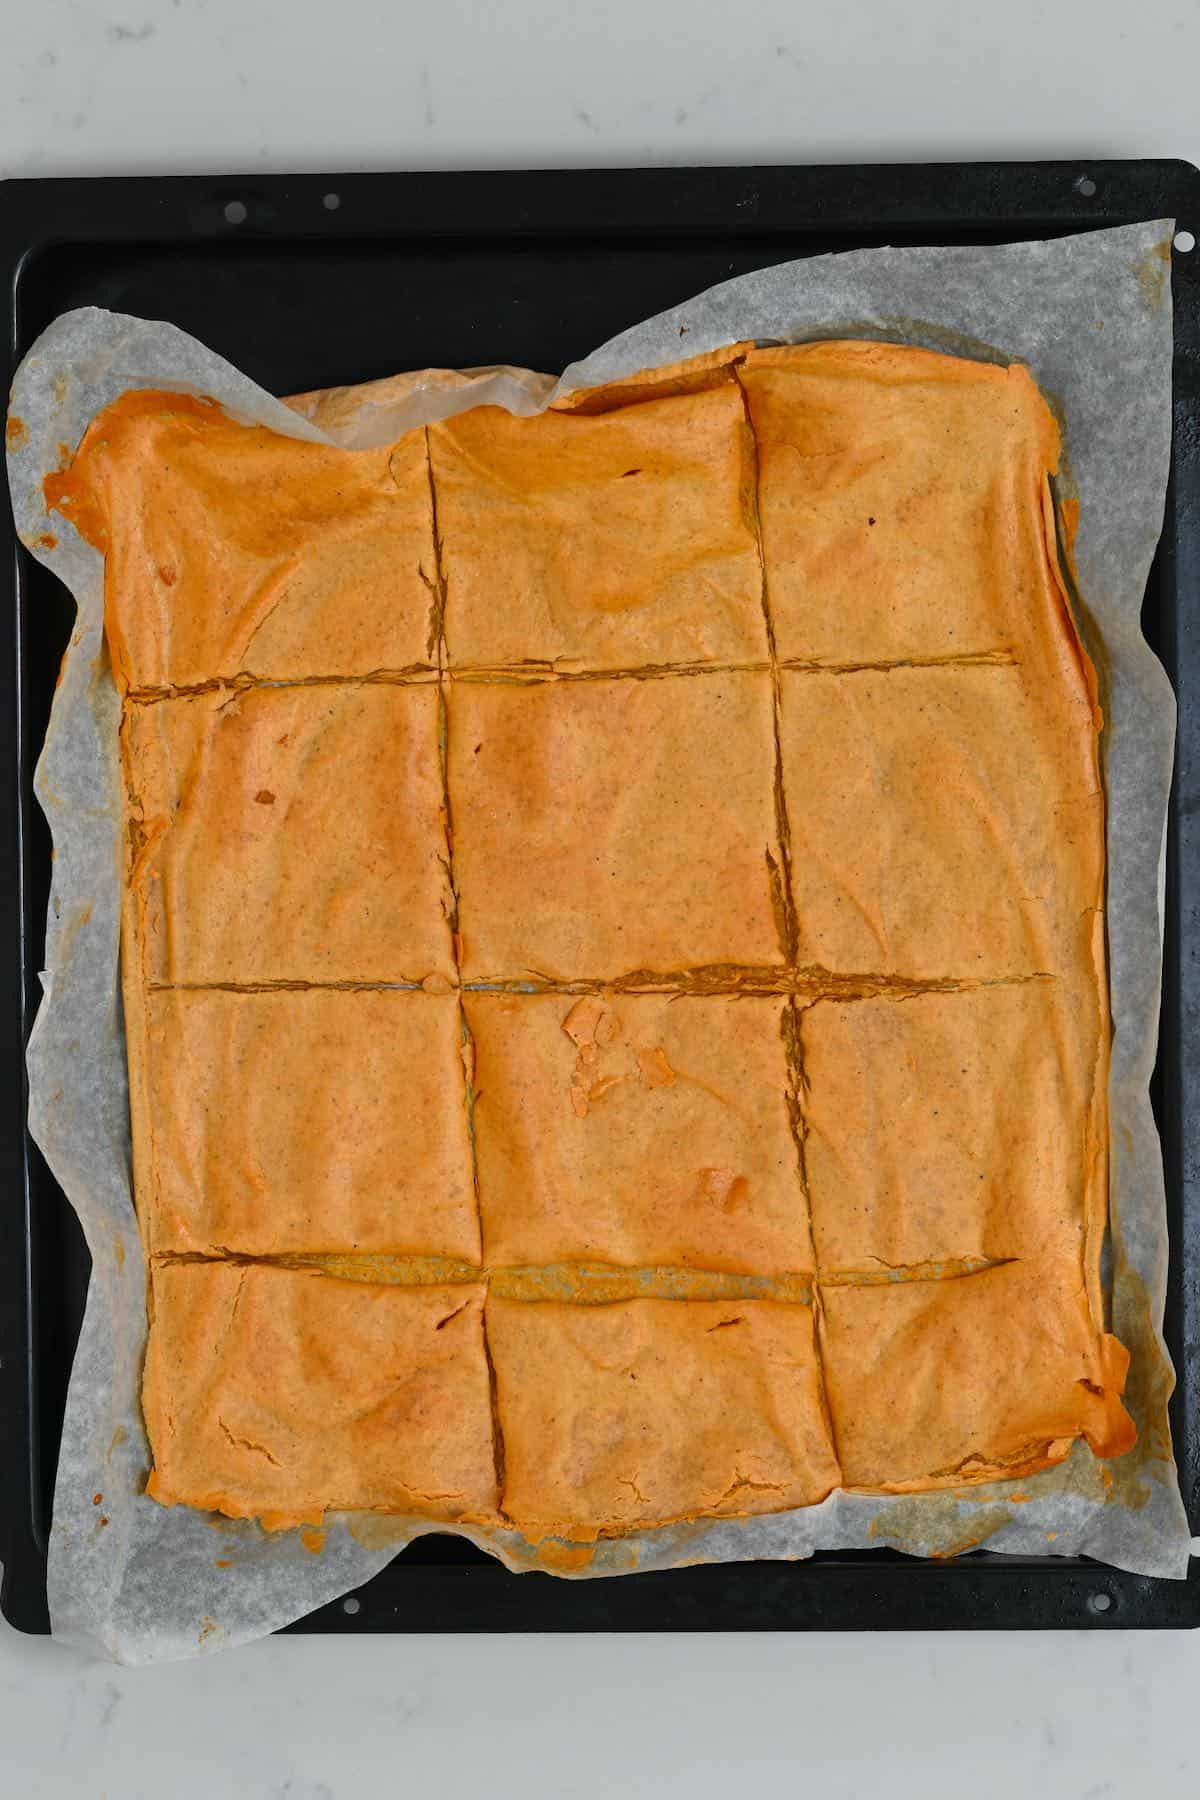 Red lentil crackers on a baking tray